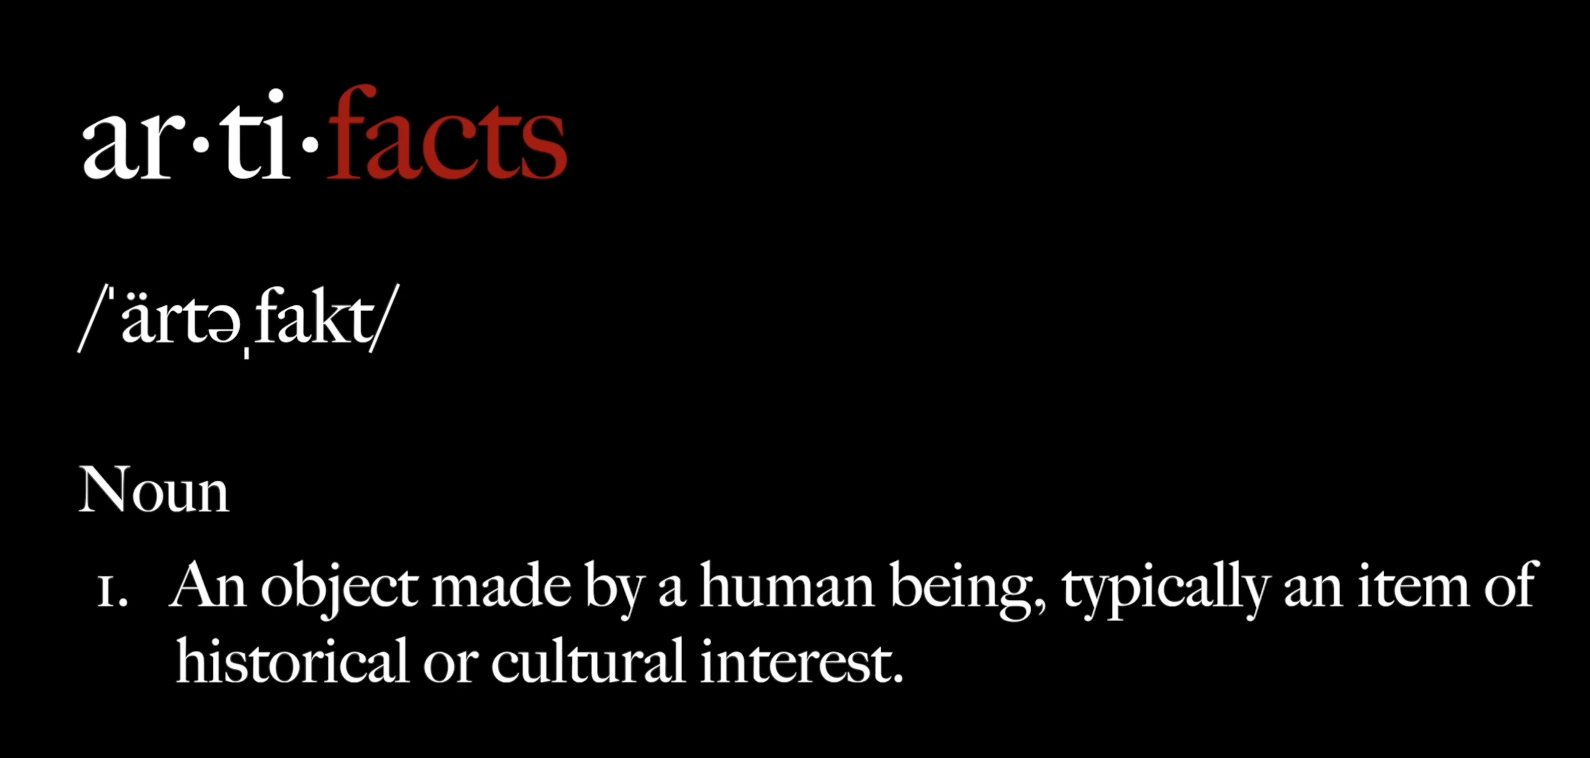 Title card for the artifacts movie series